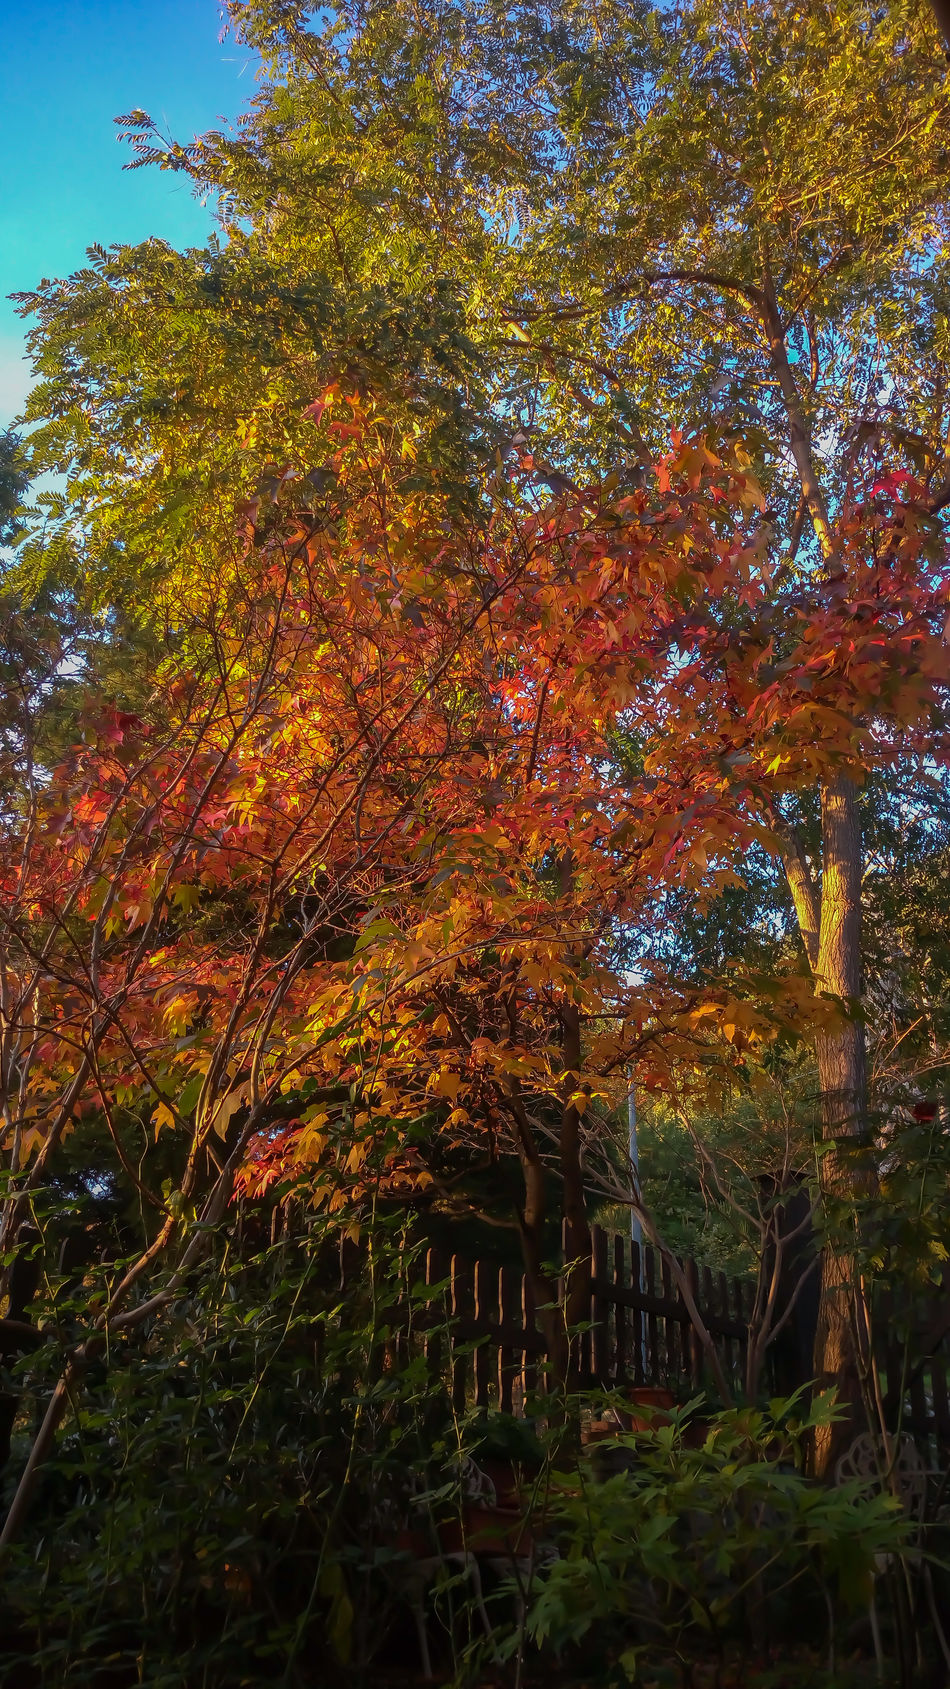 Tree Beauty In Nature Orange Color Autumn Beauty In Nature Autumn Colors Mygardentoday At Home Sweet Home Garden Photography StonexOneGalileo Athomeinthemountains Athomeinthewood Countrystyle Countryhouse In The Wood Color Explosion Liquidambar Colors